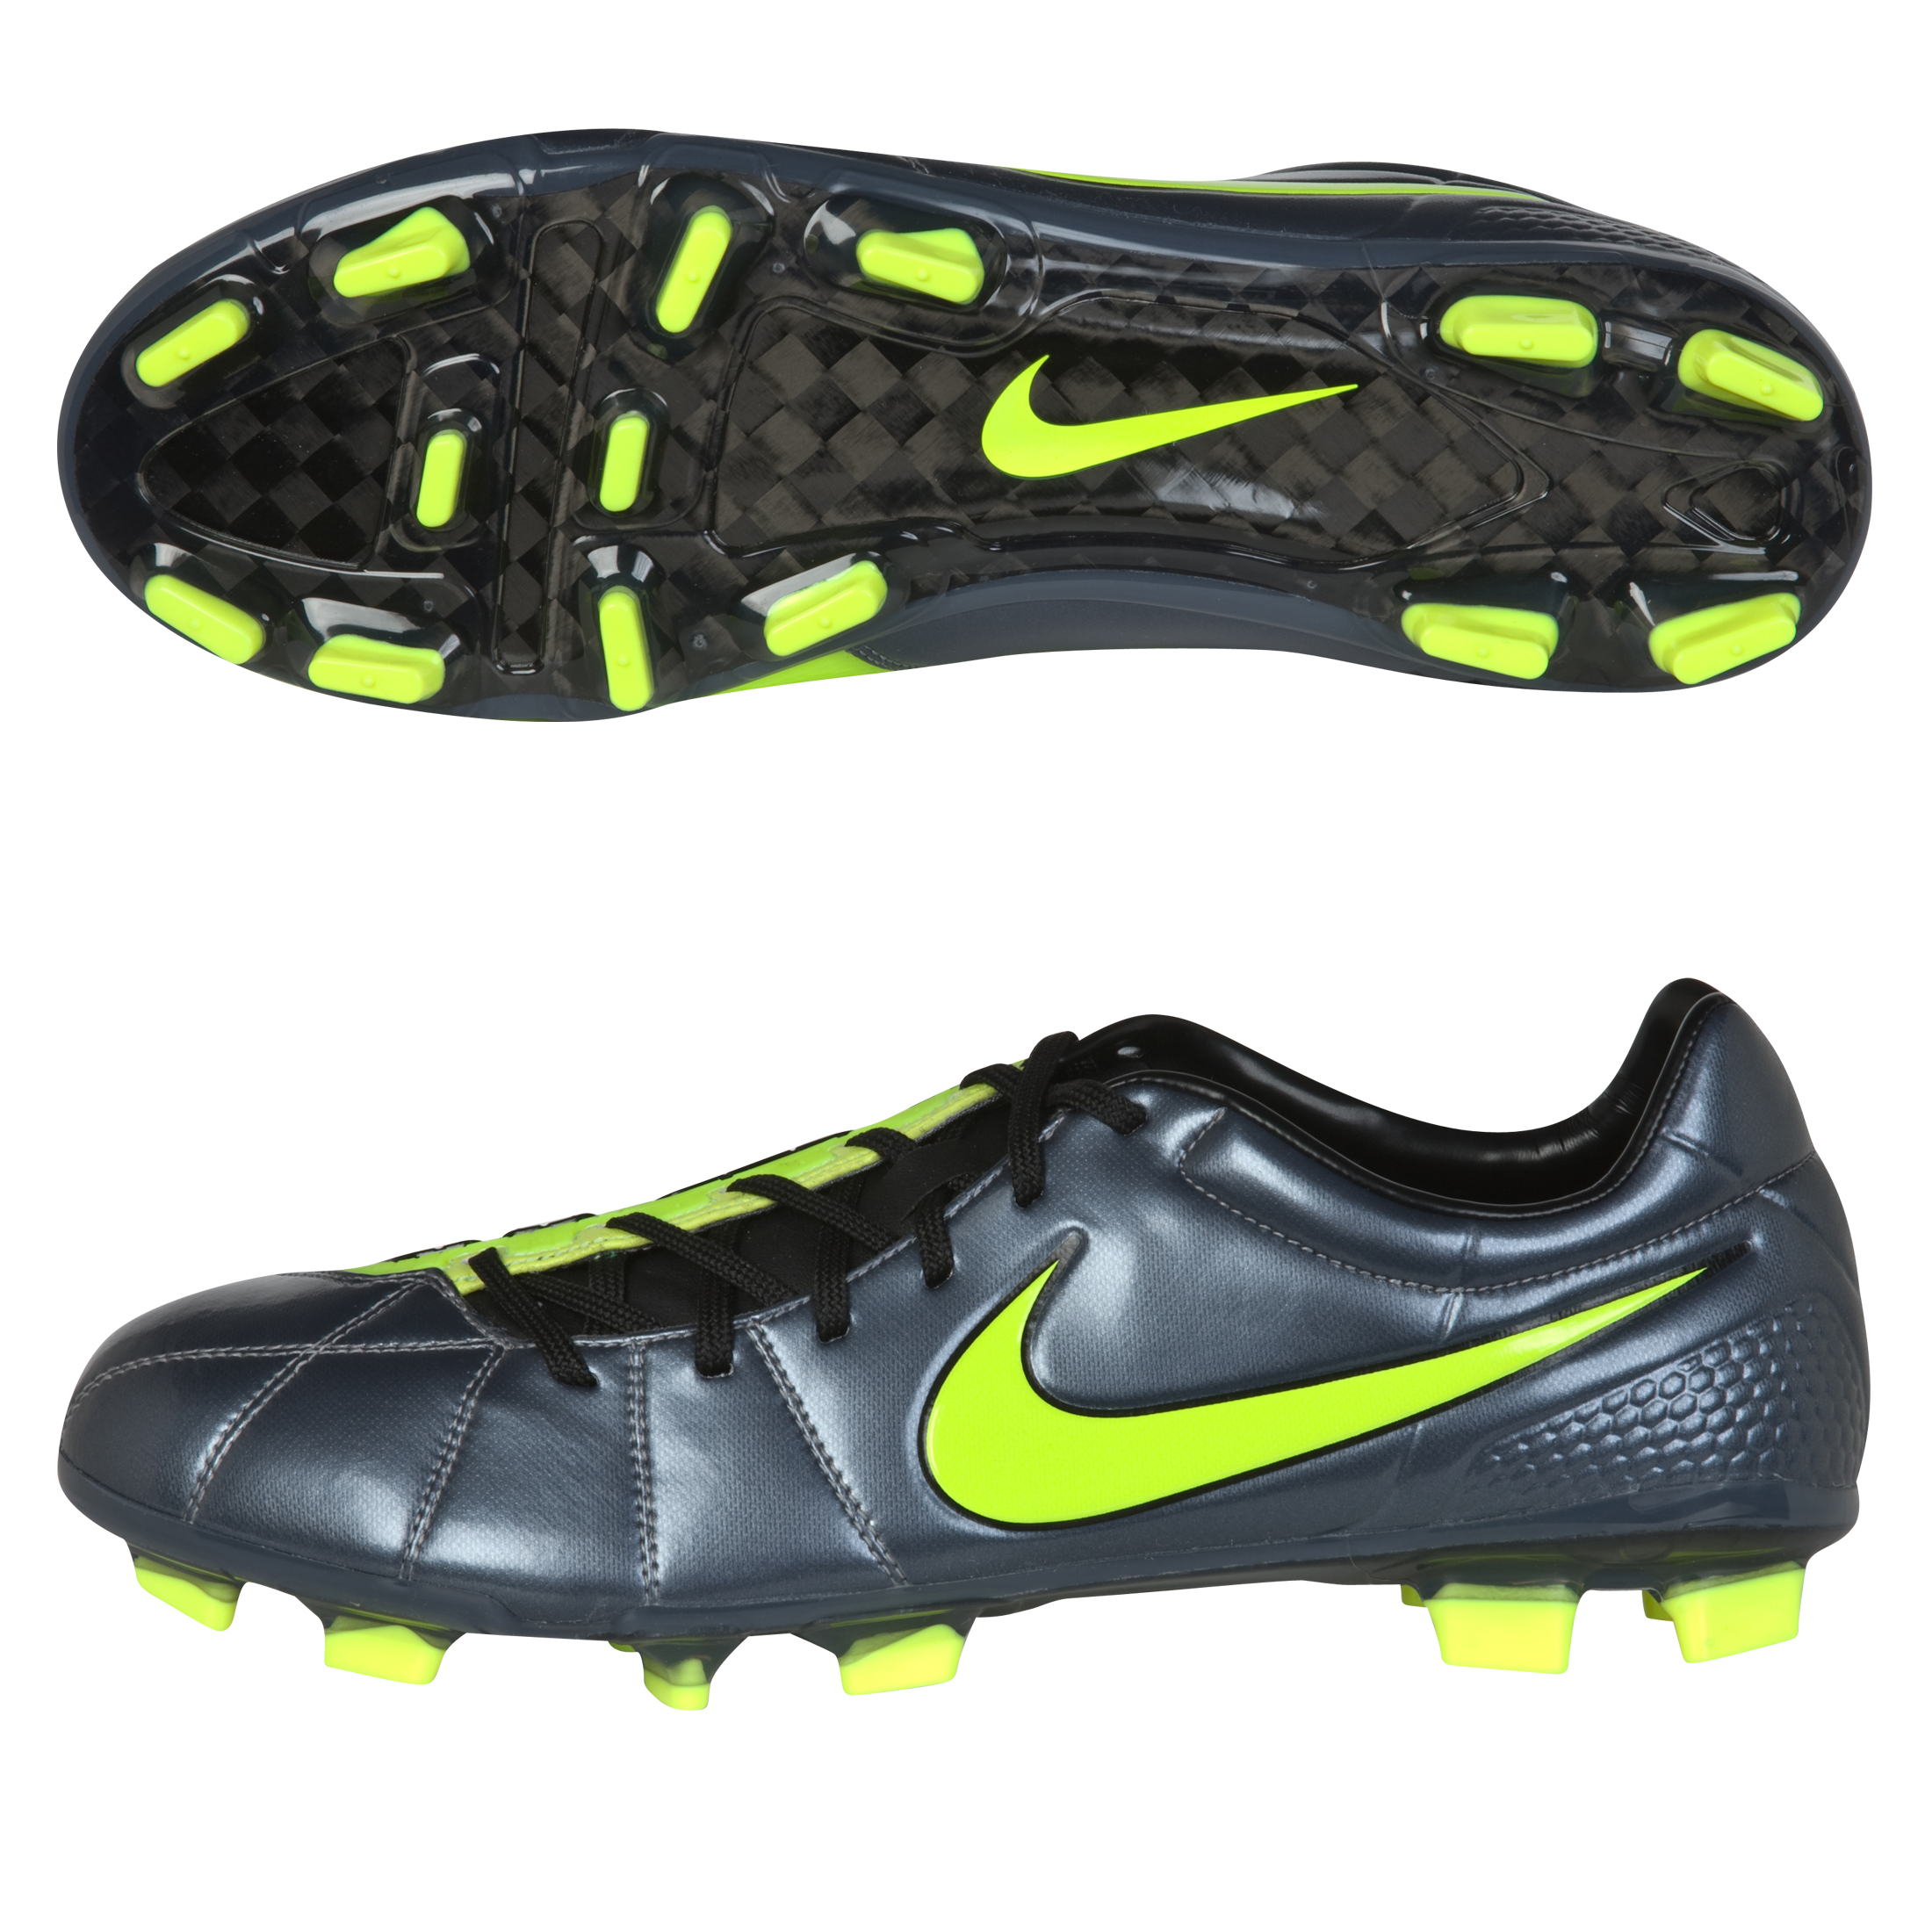 T90 Laser III Elite FG Metallic Blue Dusk/ Volt/Black